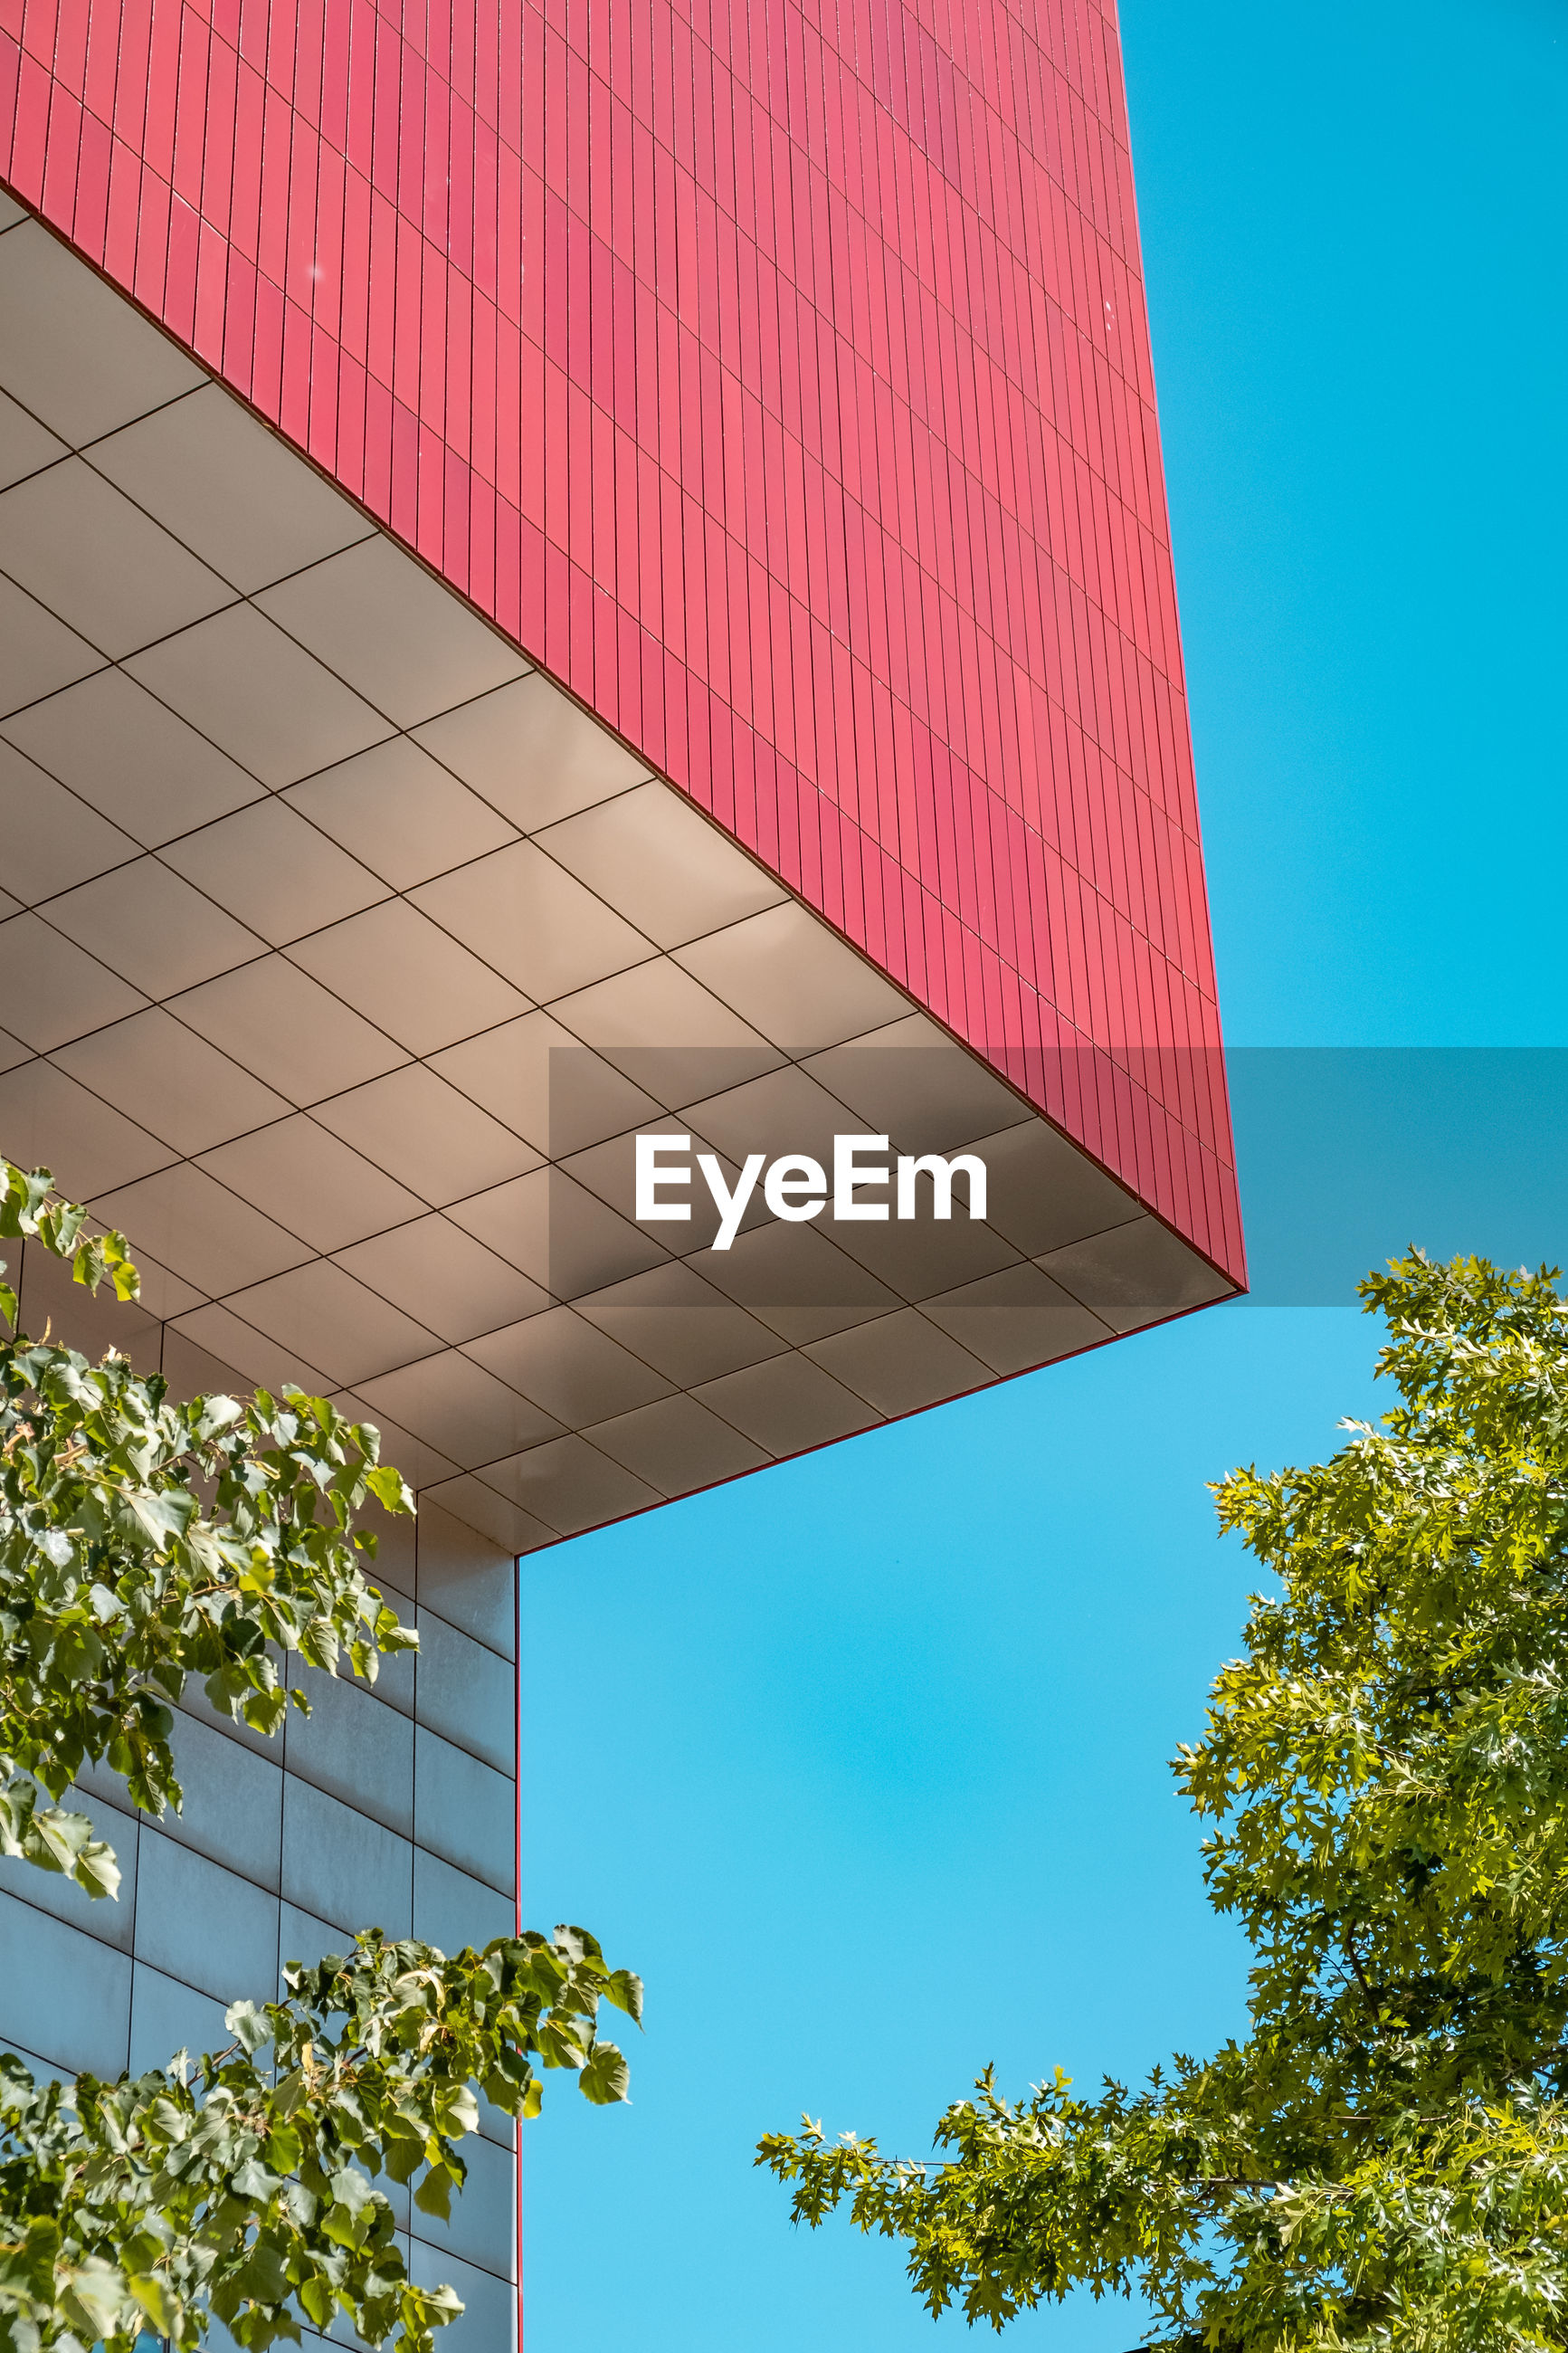 Red angular building against blue sky and trees